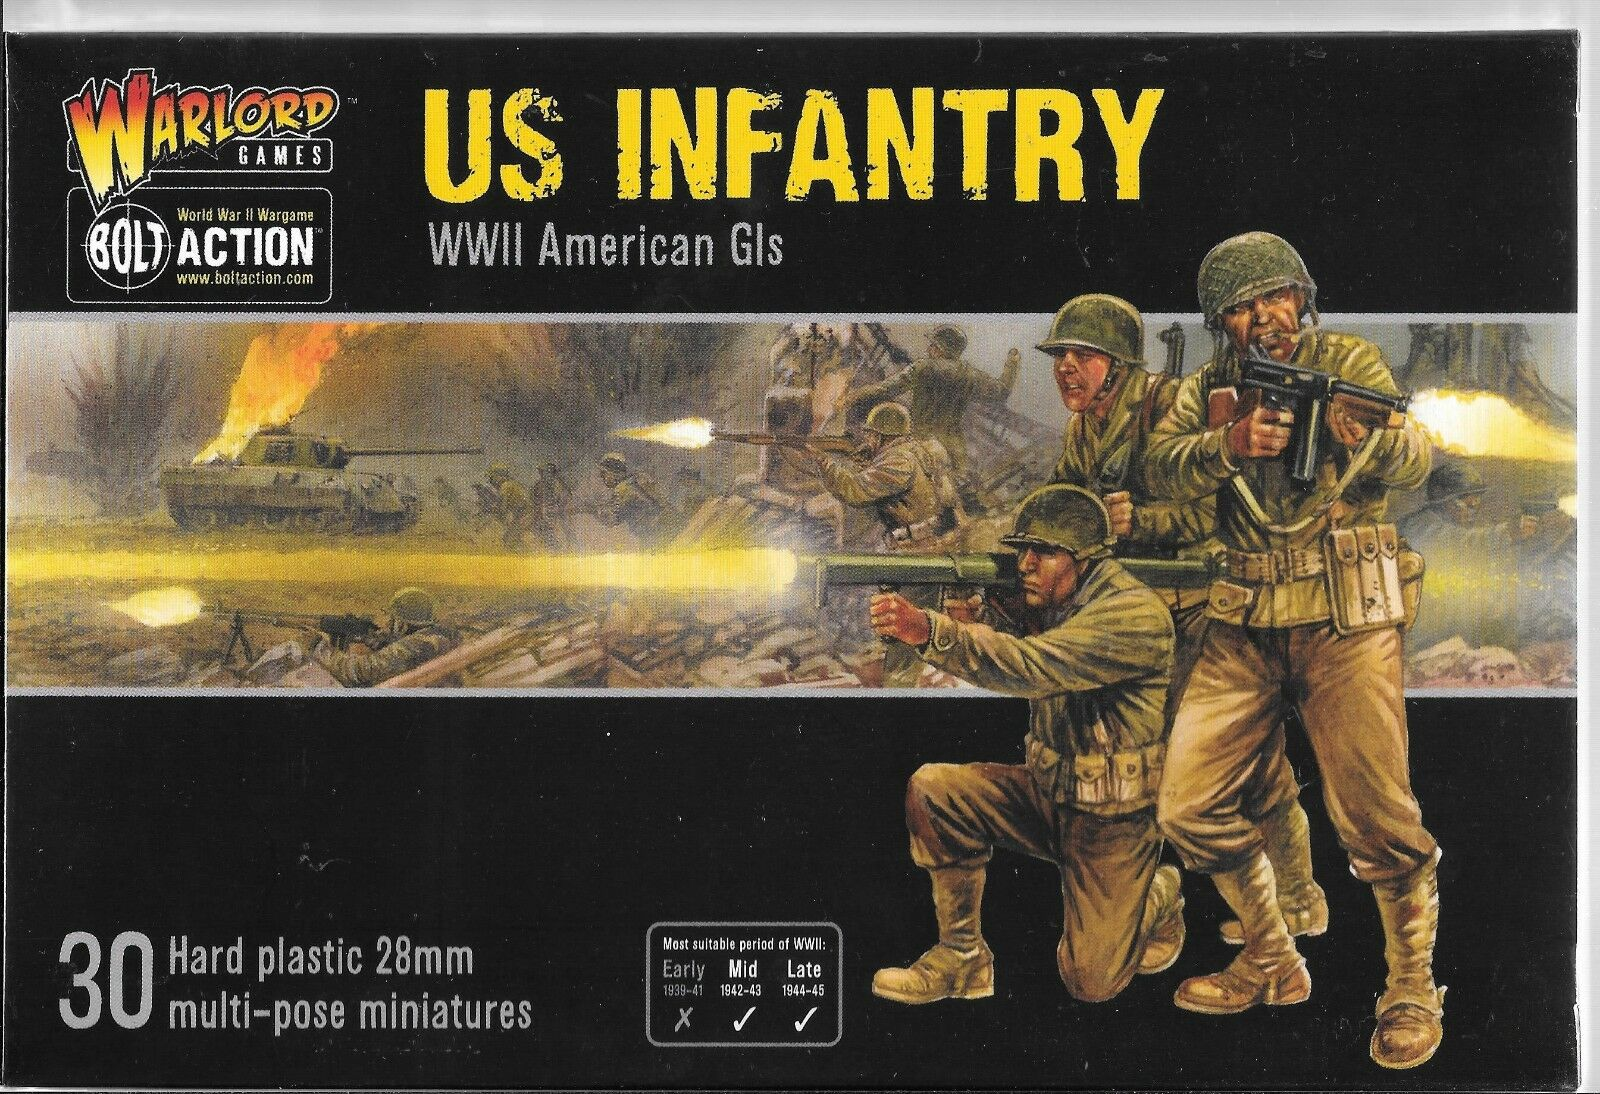 Warlord US Infantry, WWII American GIs, 30 Hard Plastic Figs, 28mm WRL 13012 ST